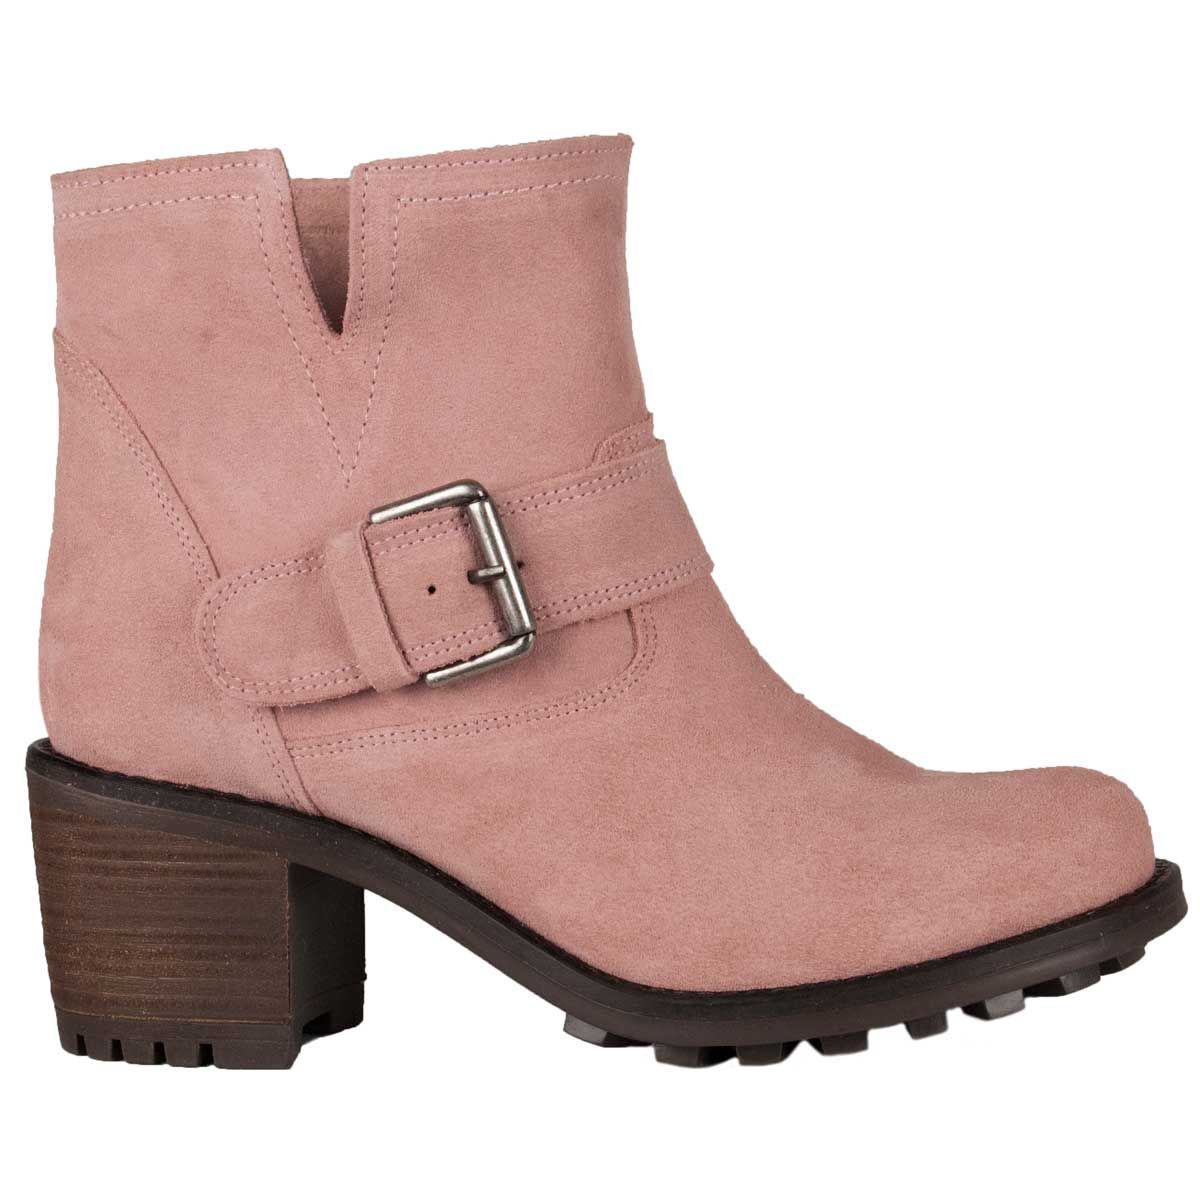 Montevita Buckle Ankle Boot in Pink